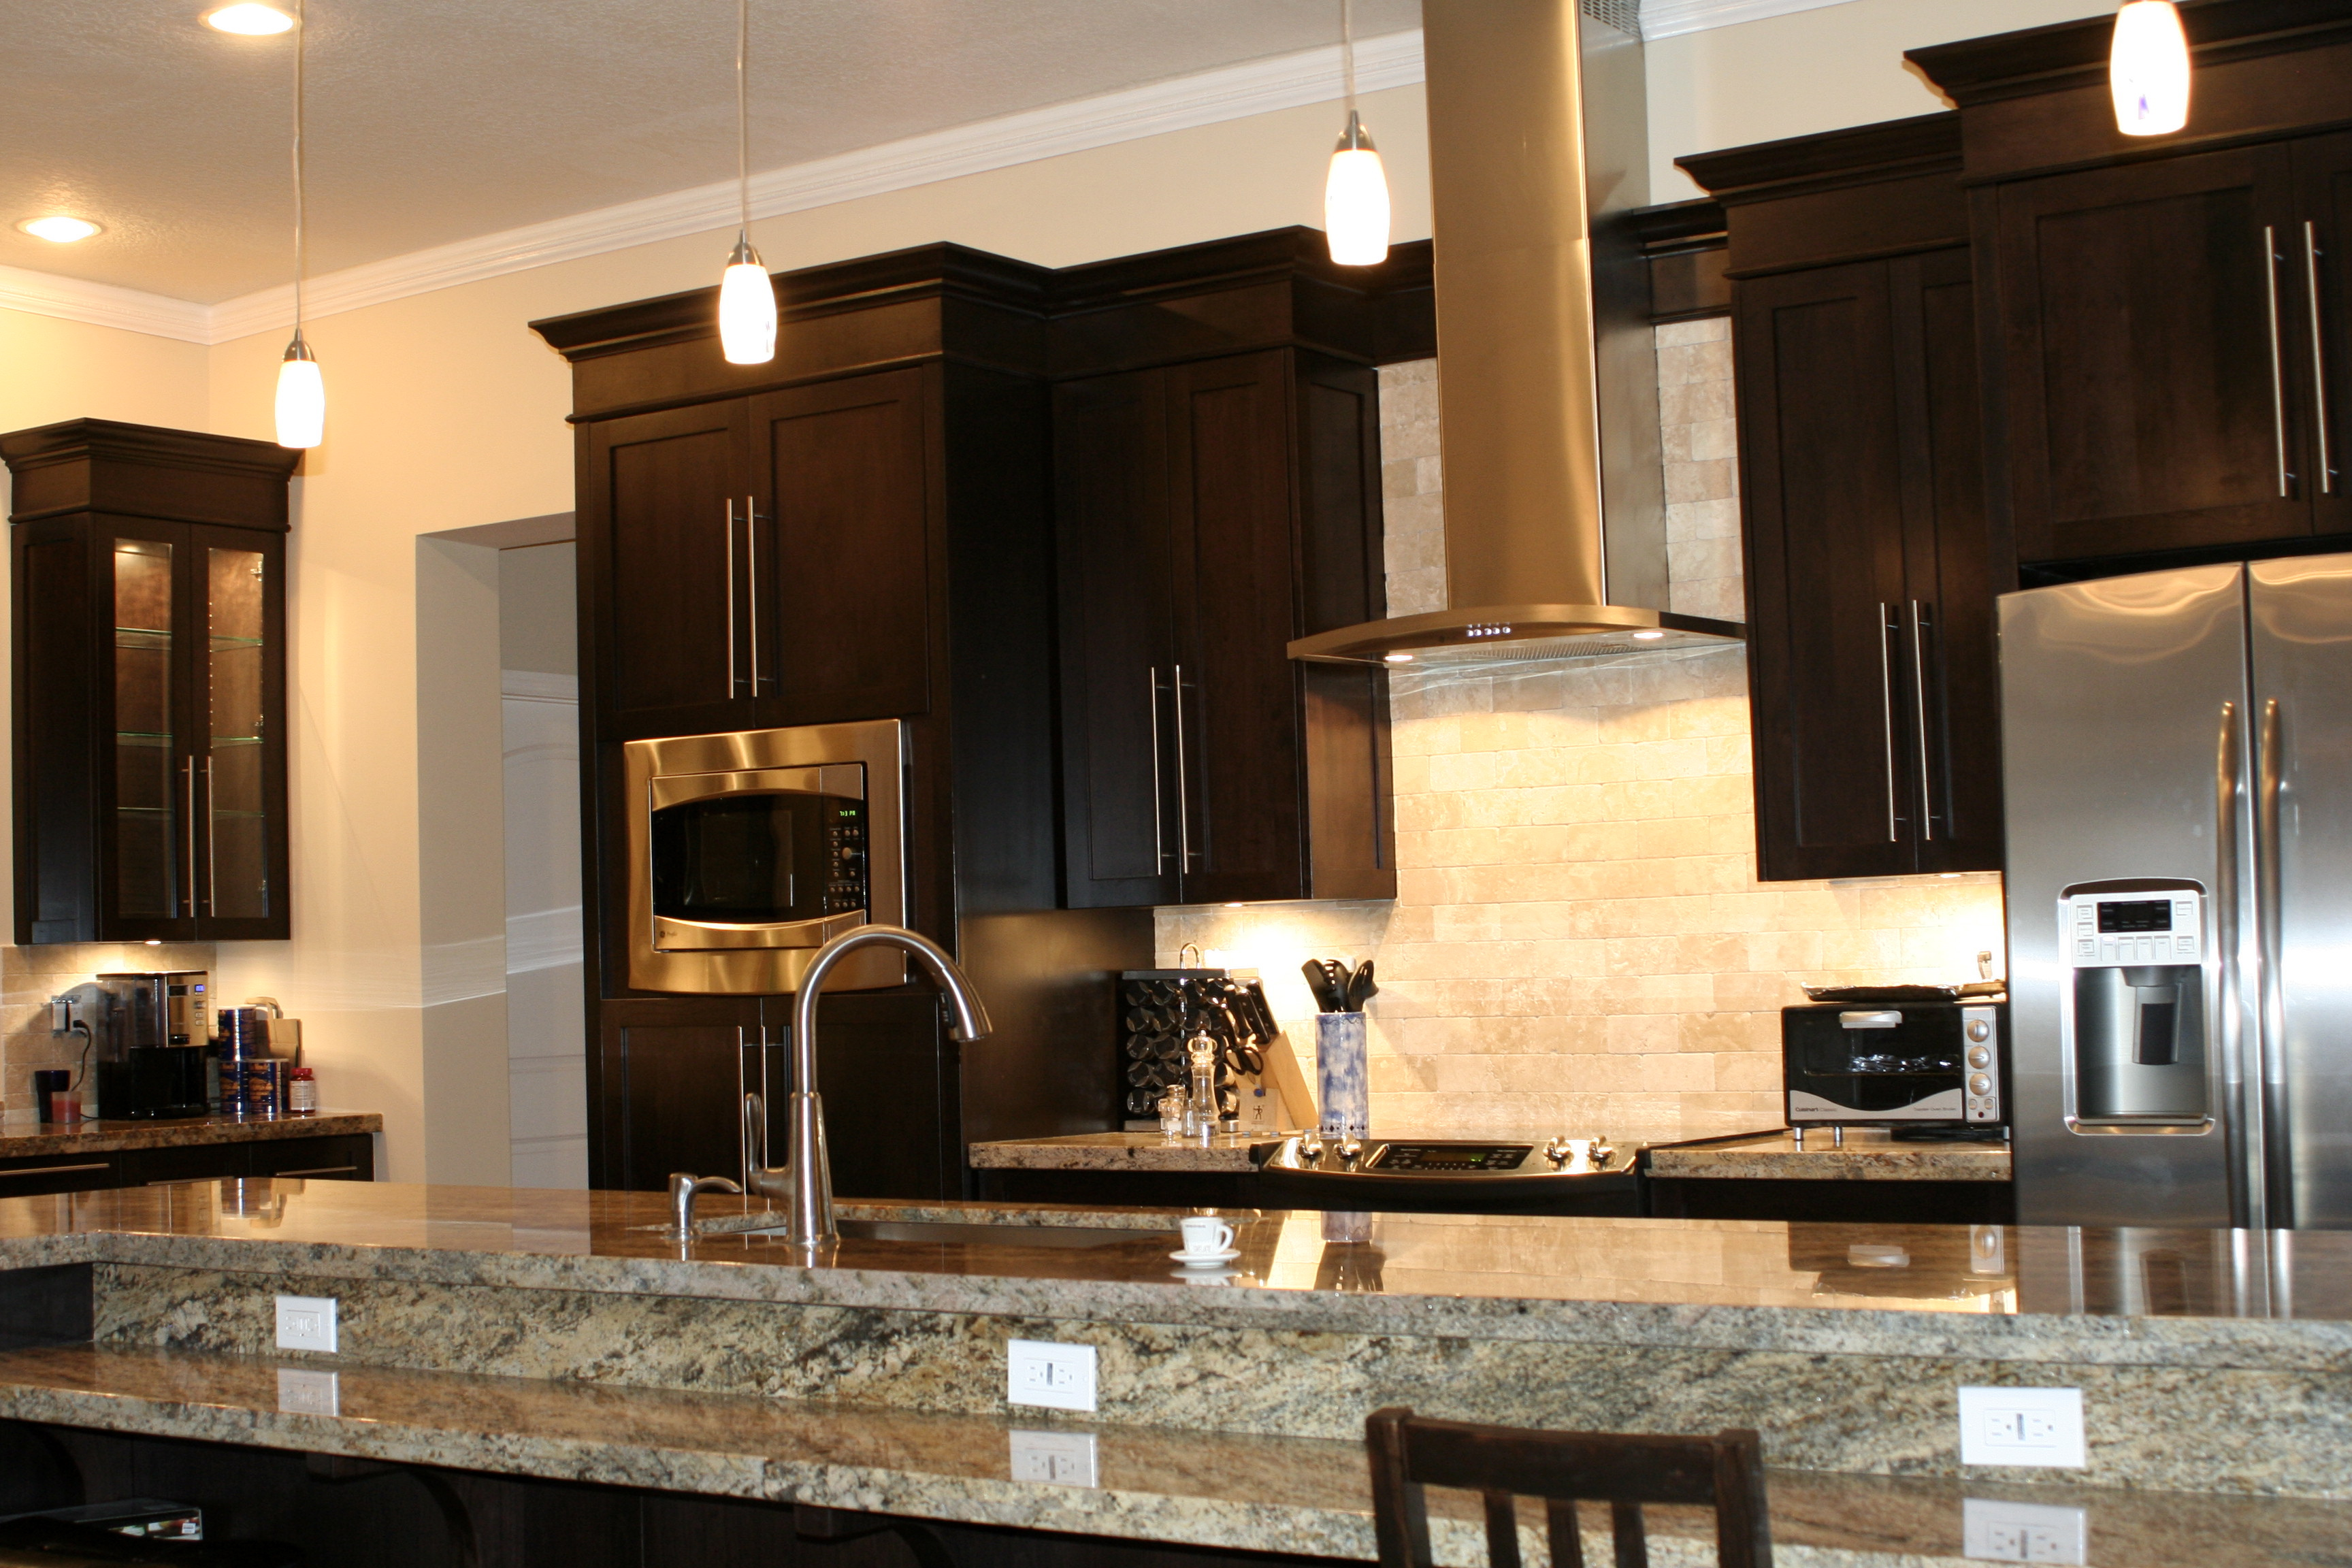 Best Kitchen Gallery: Cabi Installation J J Cabi S Call Now 786 573 0300 of Kitchen Cabinets In Miami on cal-ite.com